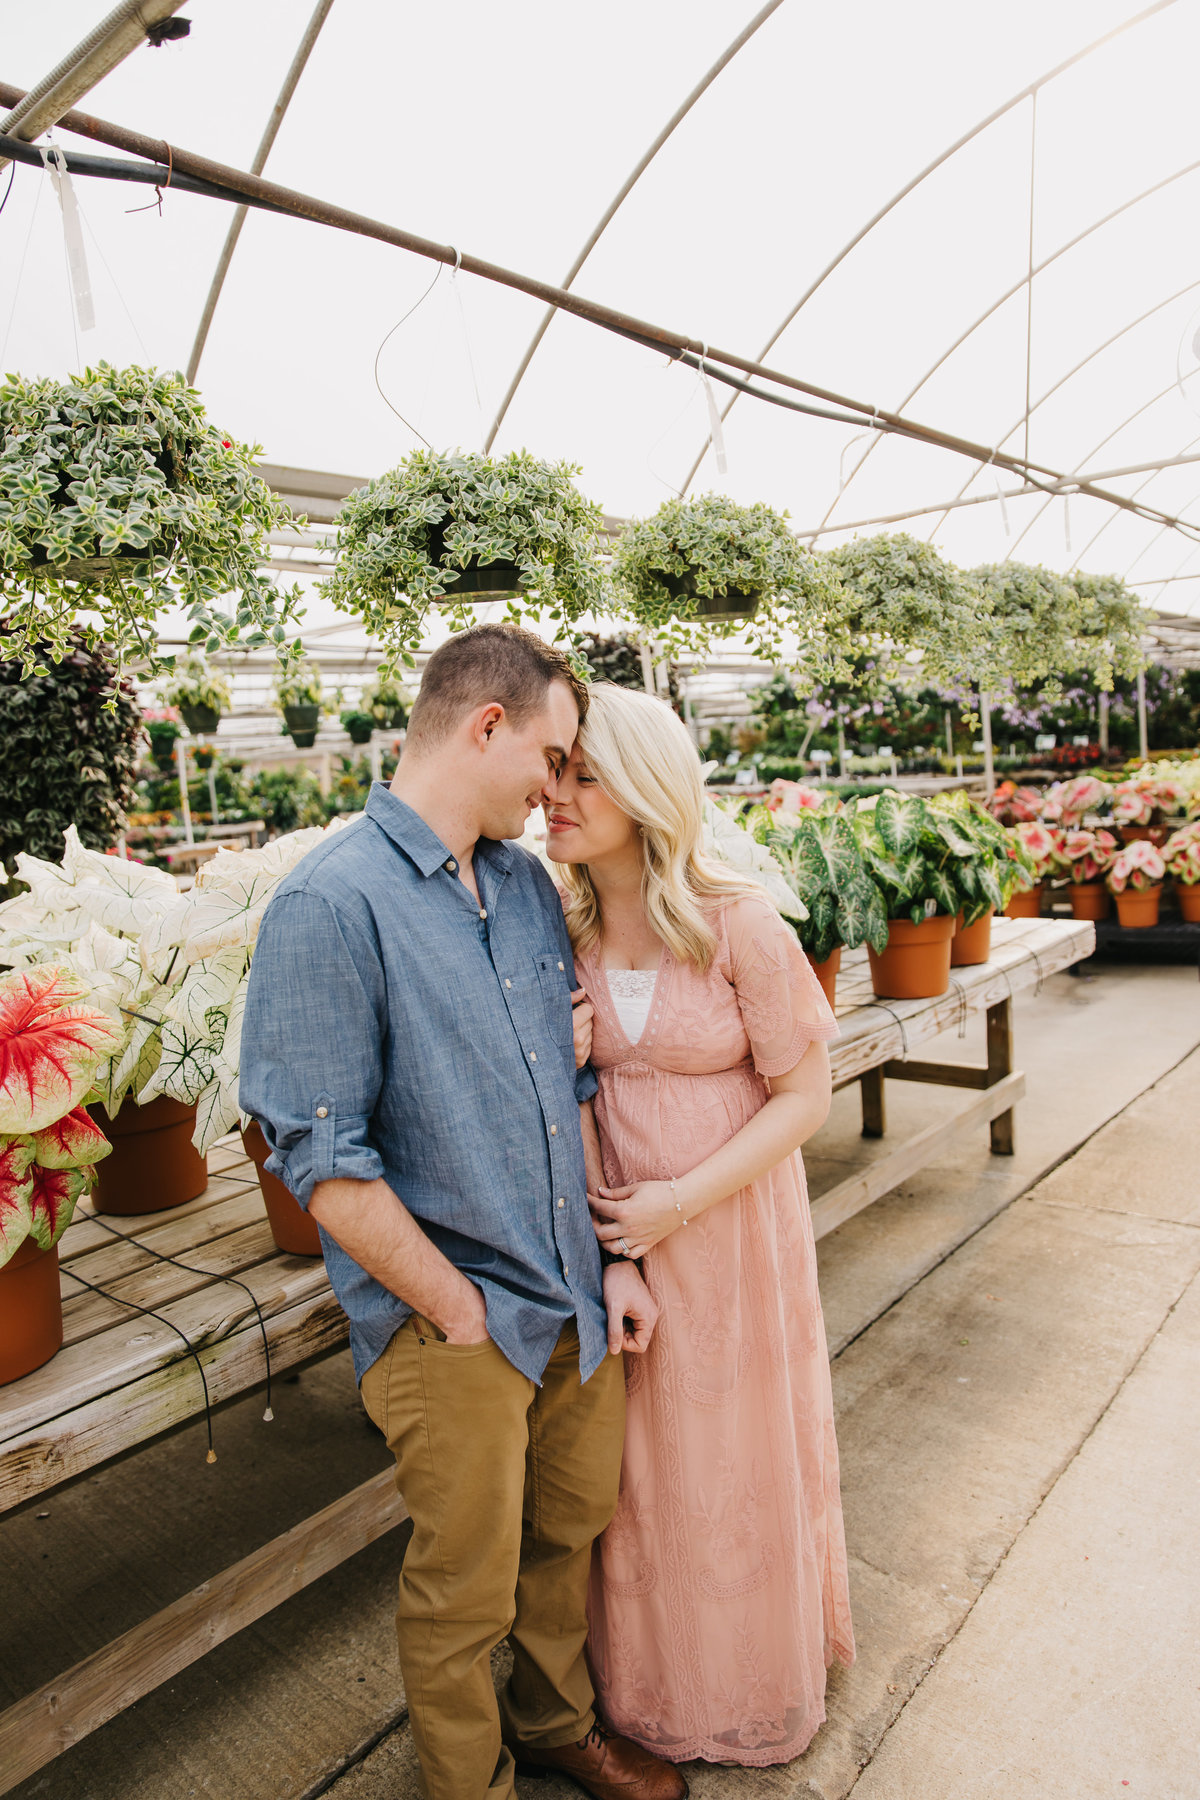 greenhouse-maternity-photography-session-raleigh-2422